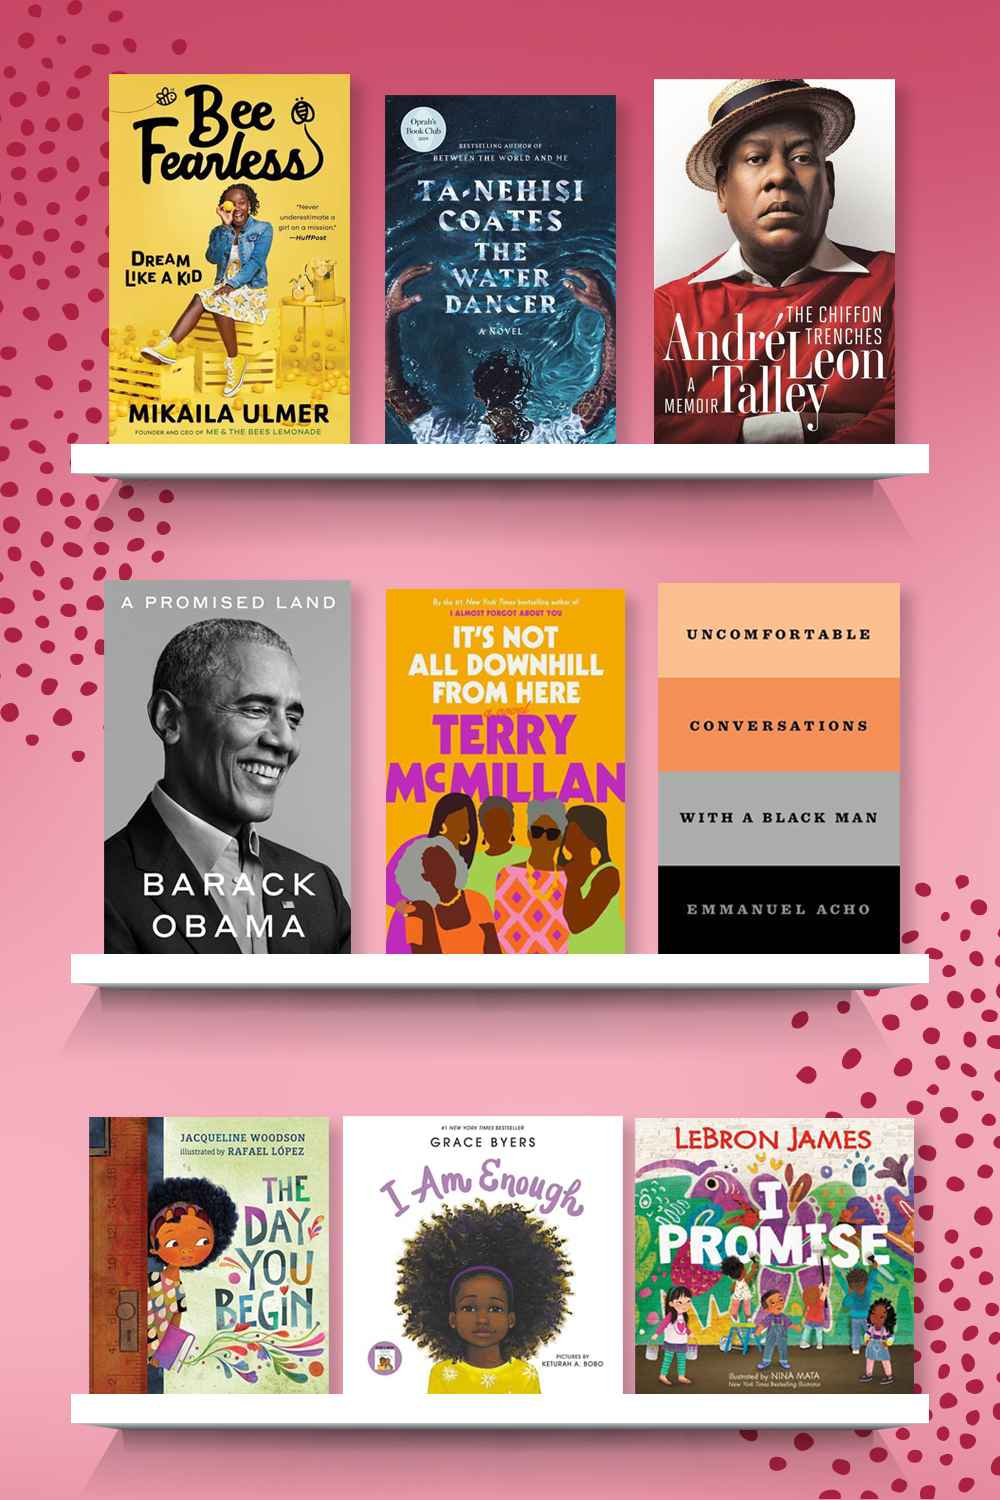 Bee Fearless: Dream Like a Kid - by  Mikaila Ulmer (Hardcover), The Water Dancer - by Ta-Nehisi Coates (Hardcover), The Chiffon Trenches - by  André Leon Talley (Hardcover), A Promised Land - by Barack Obama (Hardcover), It's Not All Downhill from Here - by Terry McMillan (Hardcover), Uncomfortable Conversations With a Black Man - by Emmanuel Acho (Hardcover), Day You Begin - by Jacqueline Woodson (School And Library) (Hardcover), I Am Enough - by Grace Byers (Hardcover), I Promise - by Lebron James (Hardcover)